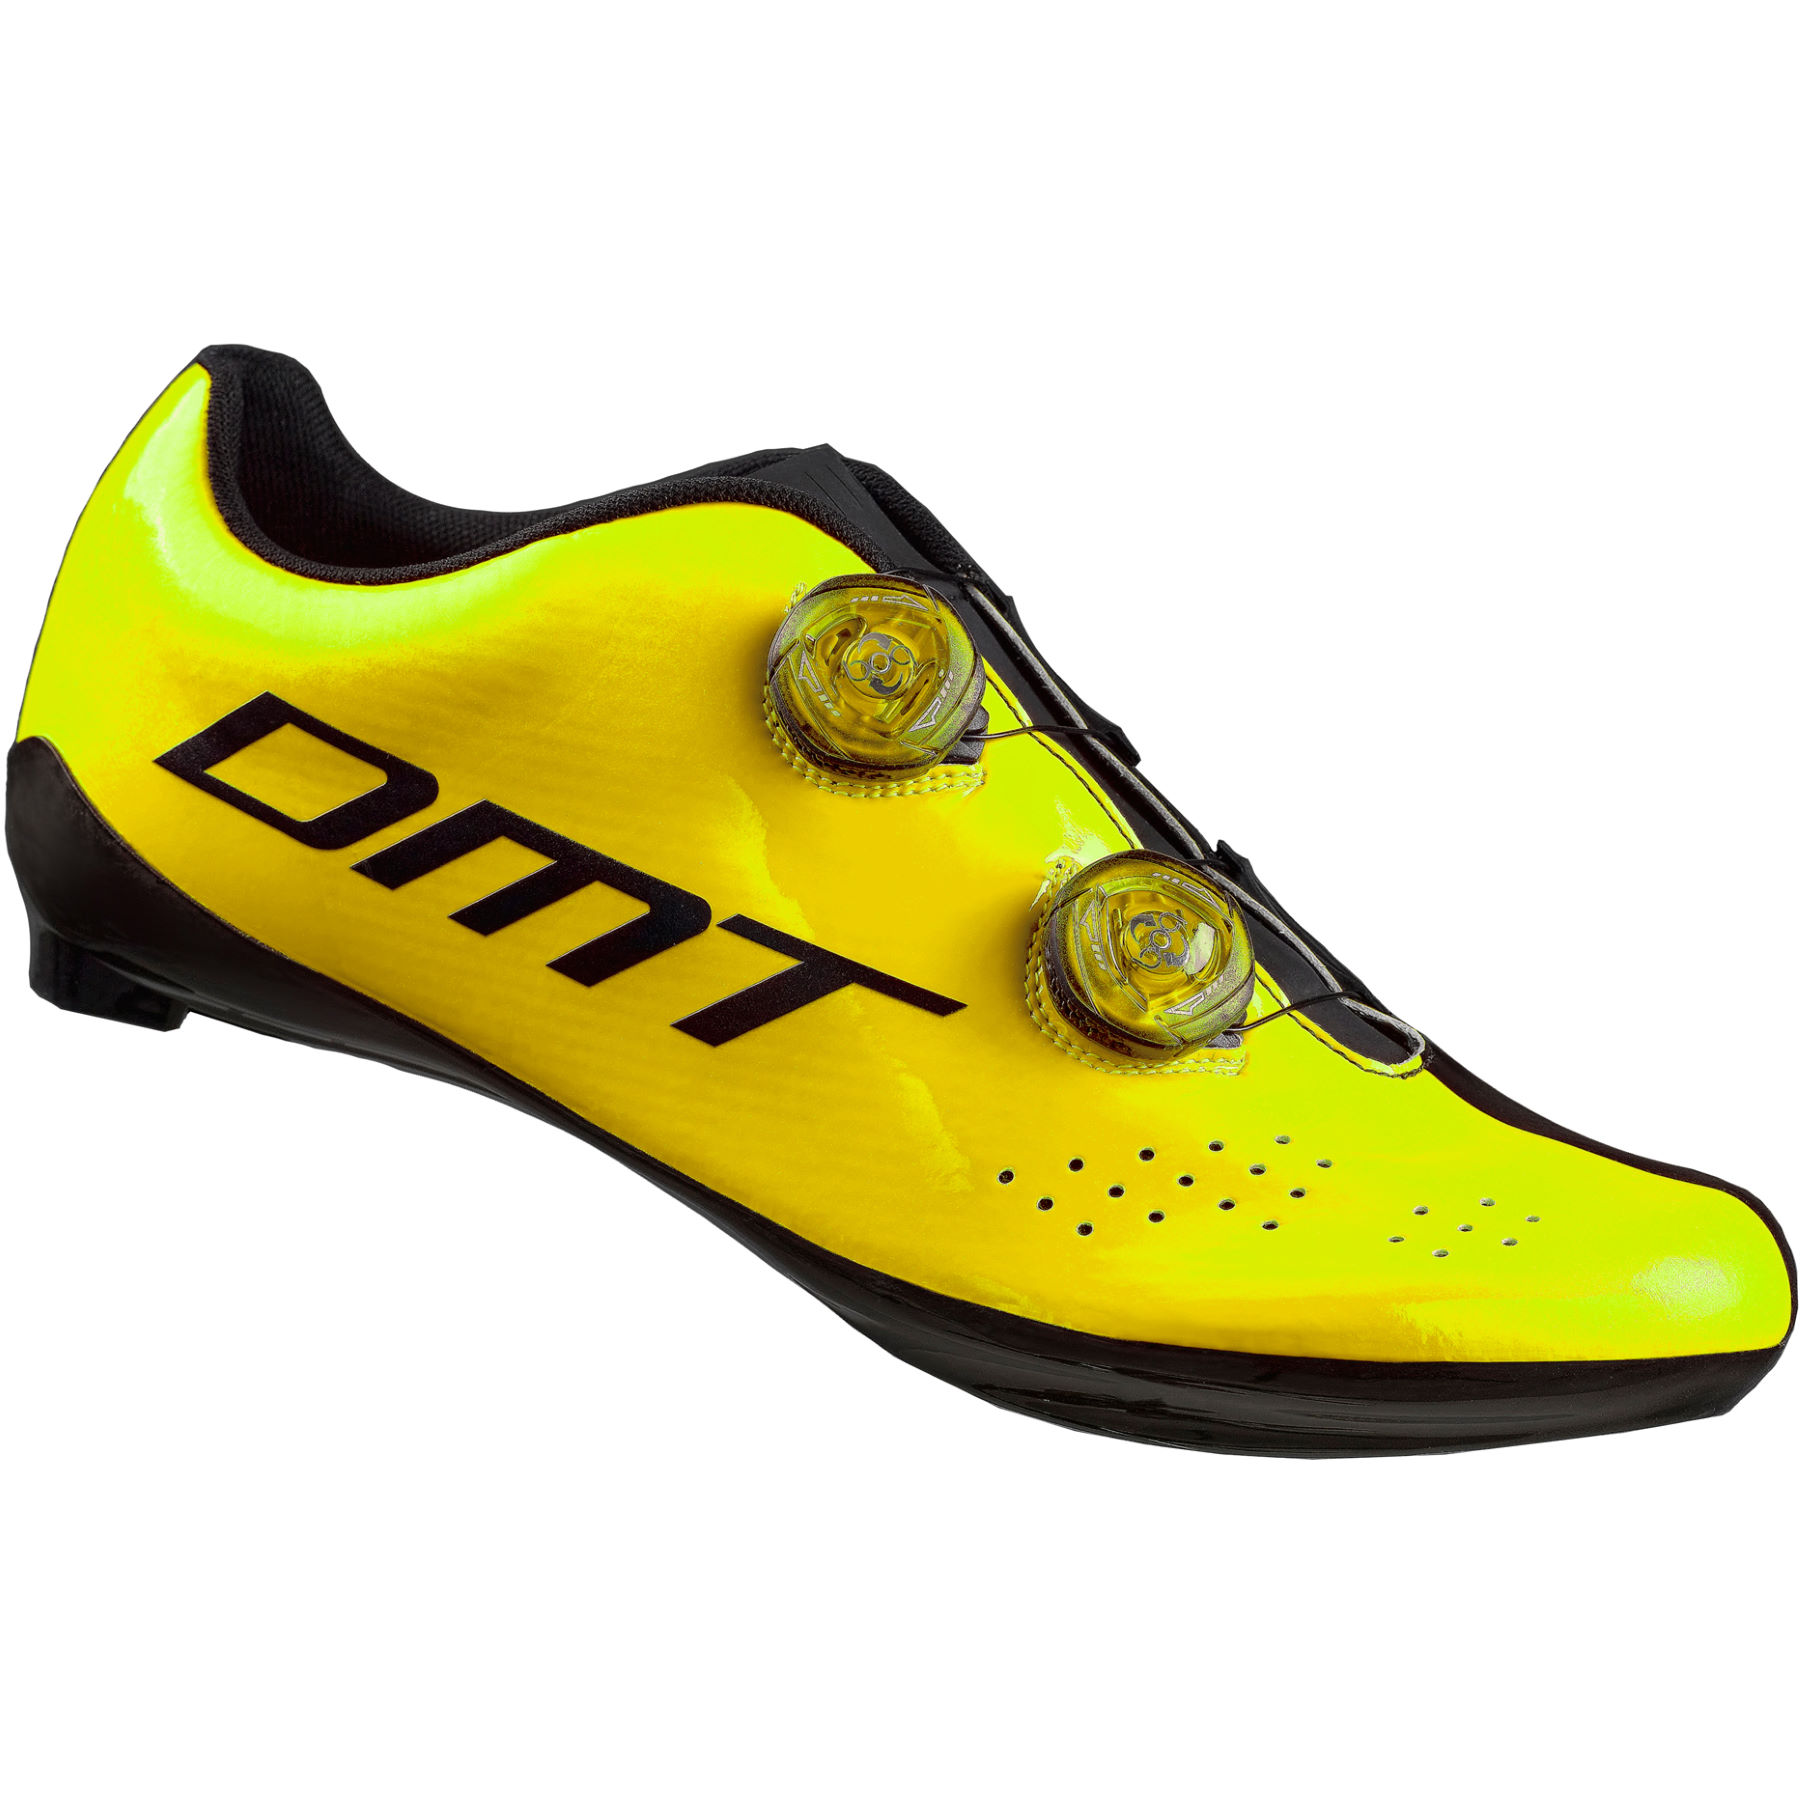 Northwave Lace Up Cycling Shoes